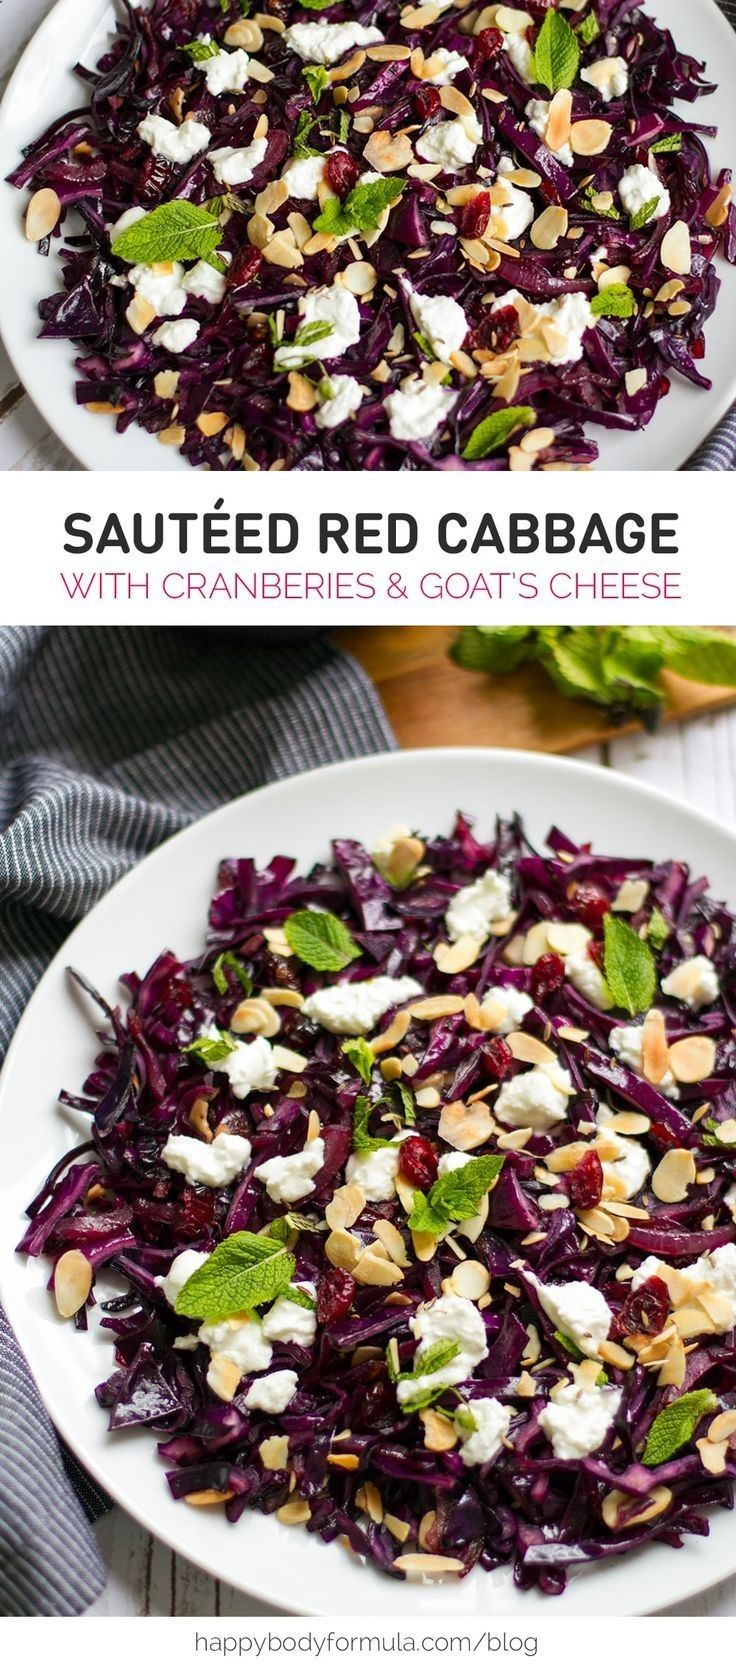 Warm Red Cabbage with Cranberries, Goats Cheese  Almonds - gluten free, paleo-ish and primal recipe for all to enjoy.